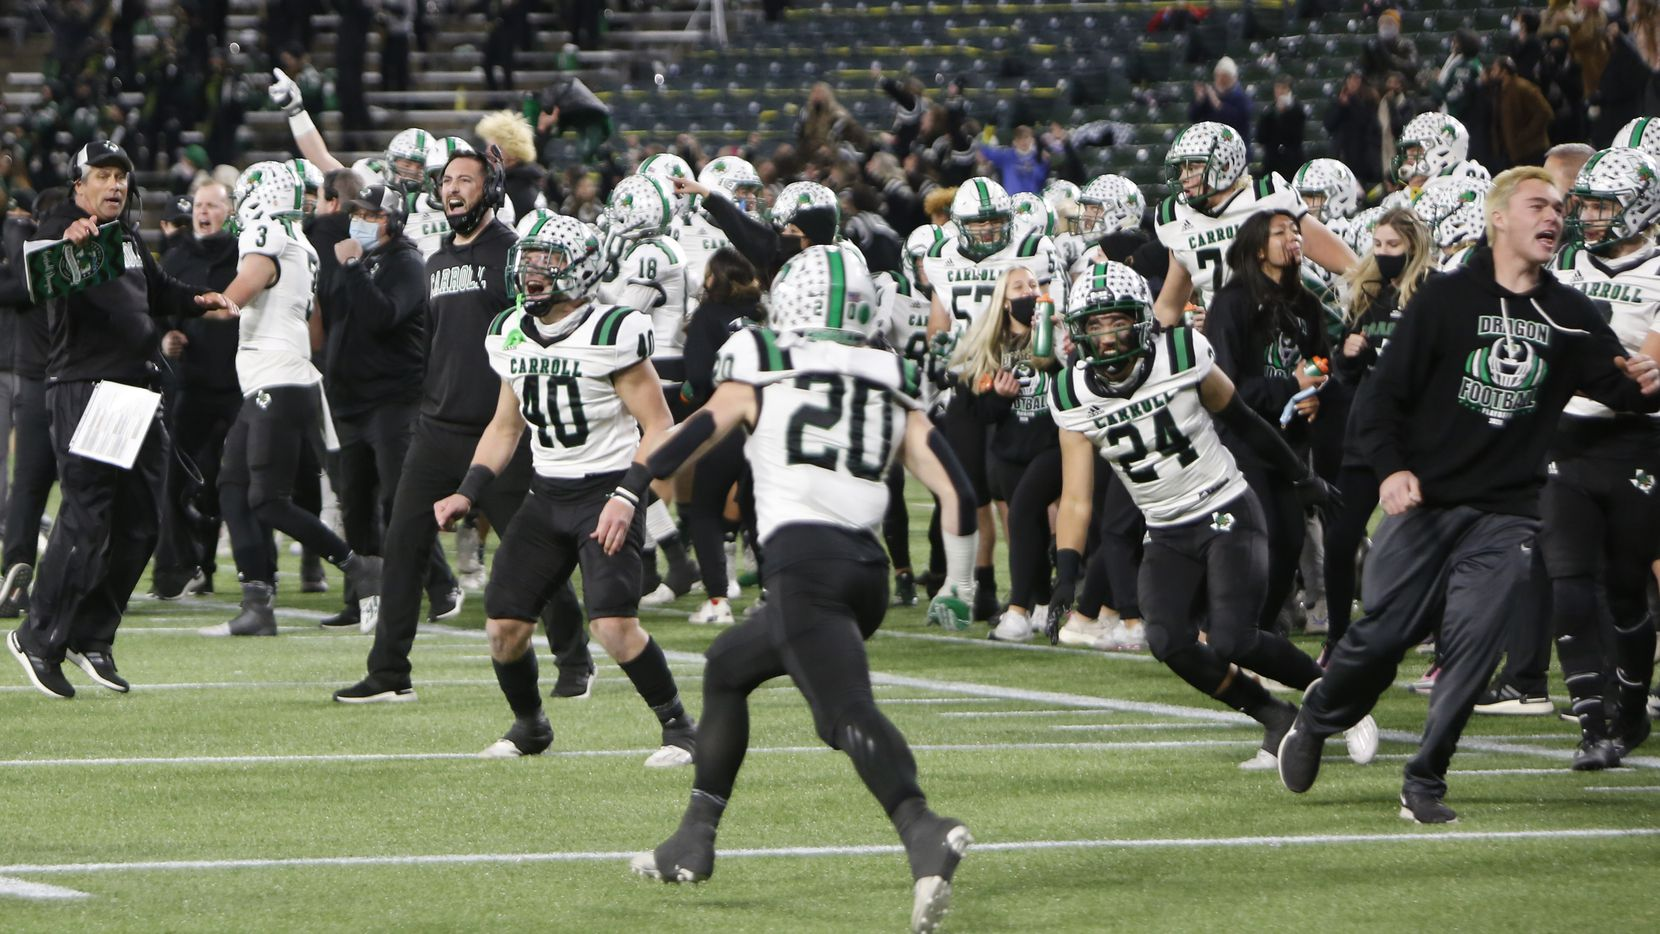 The Southlake bench erupts at a change of possession during the final seconds of the fourth quarter of their game against Arlington Martin. The Dragons defeated Martin 30-26 to advance. The two teams played their Class 6A Division l Region l semifinal football playoff game held at Globe Life Park in Arlington on December 24, 2020. (Steve Hamm/ Special Contributor)